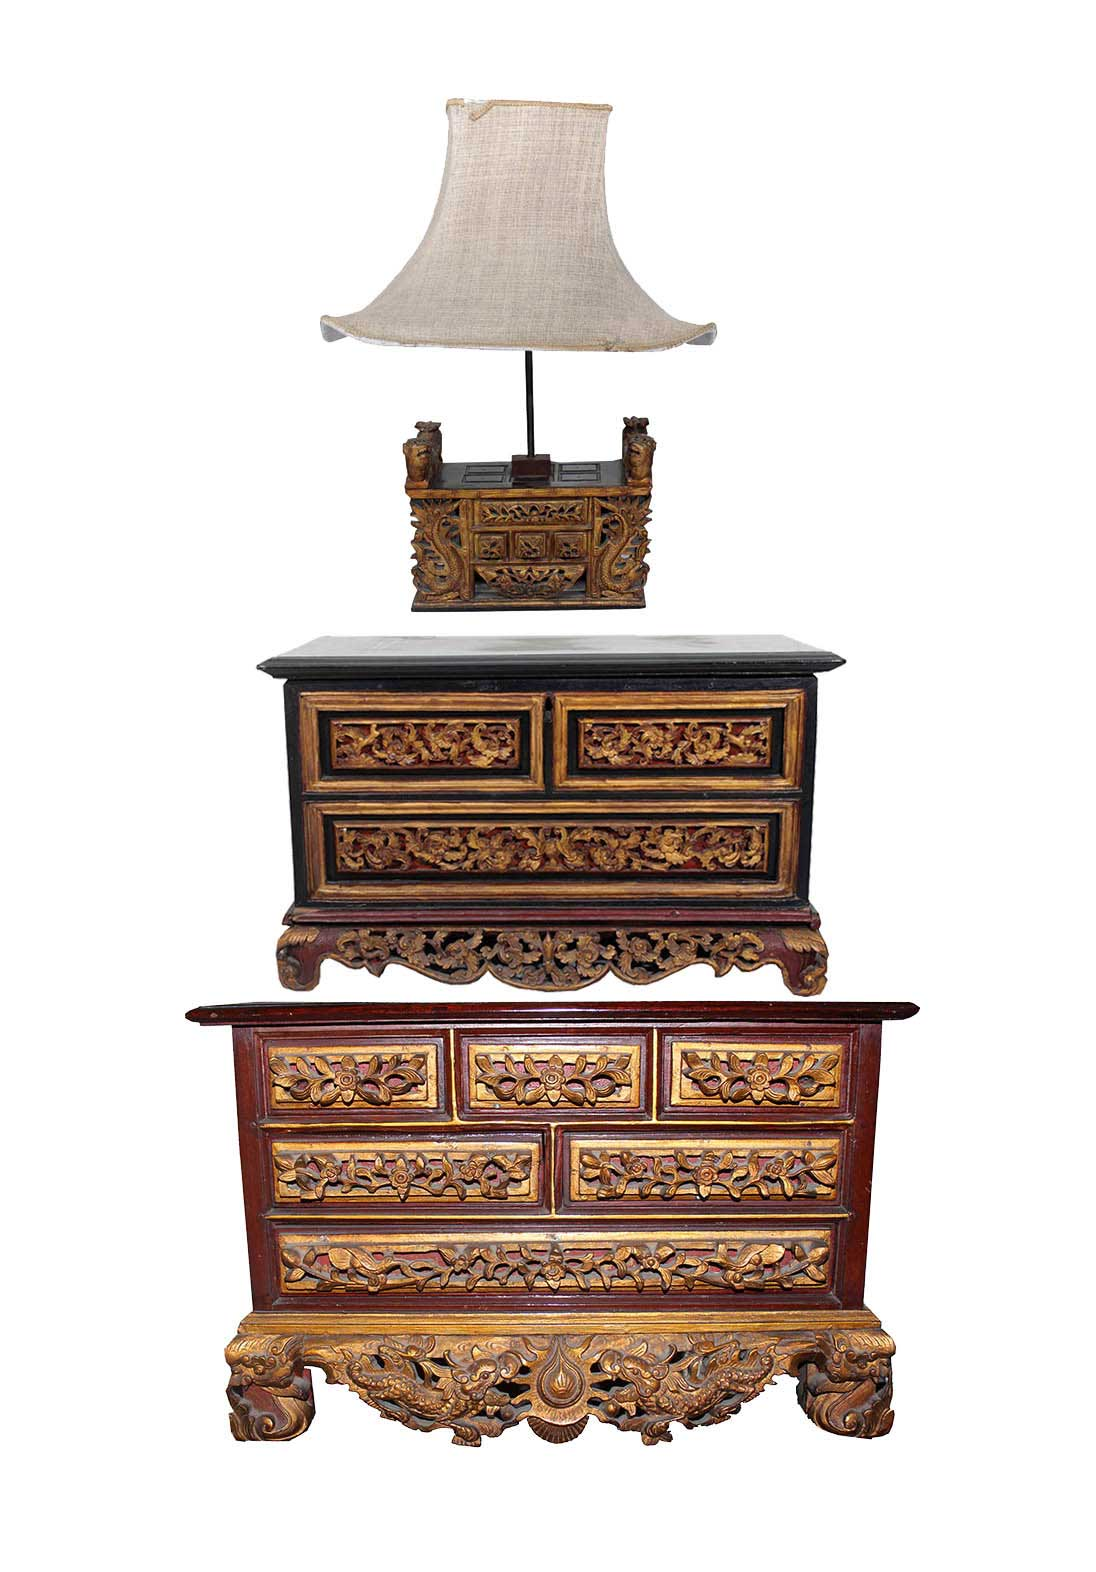 A set of three wooden brown gilt chest multi-drawers brown and gold botekan chest